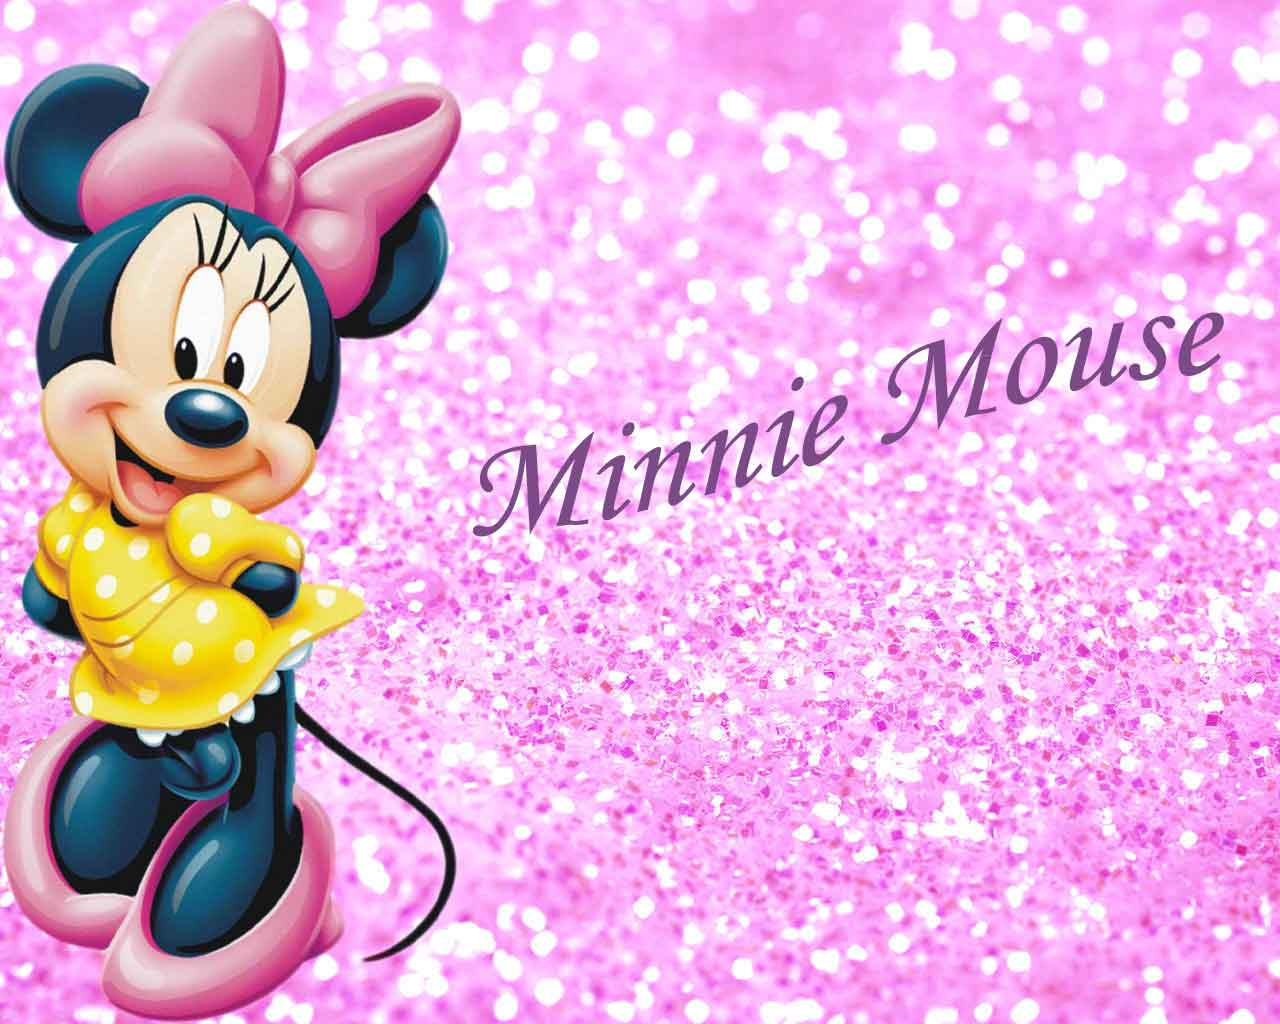 Minnie Mouse Wallpaper Download